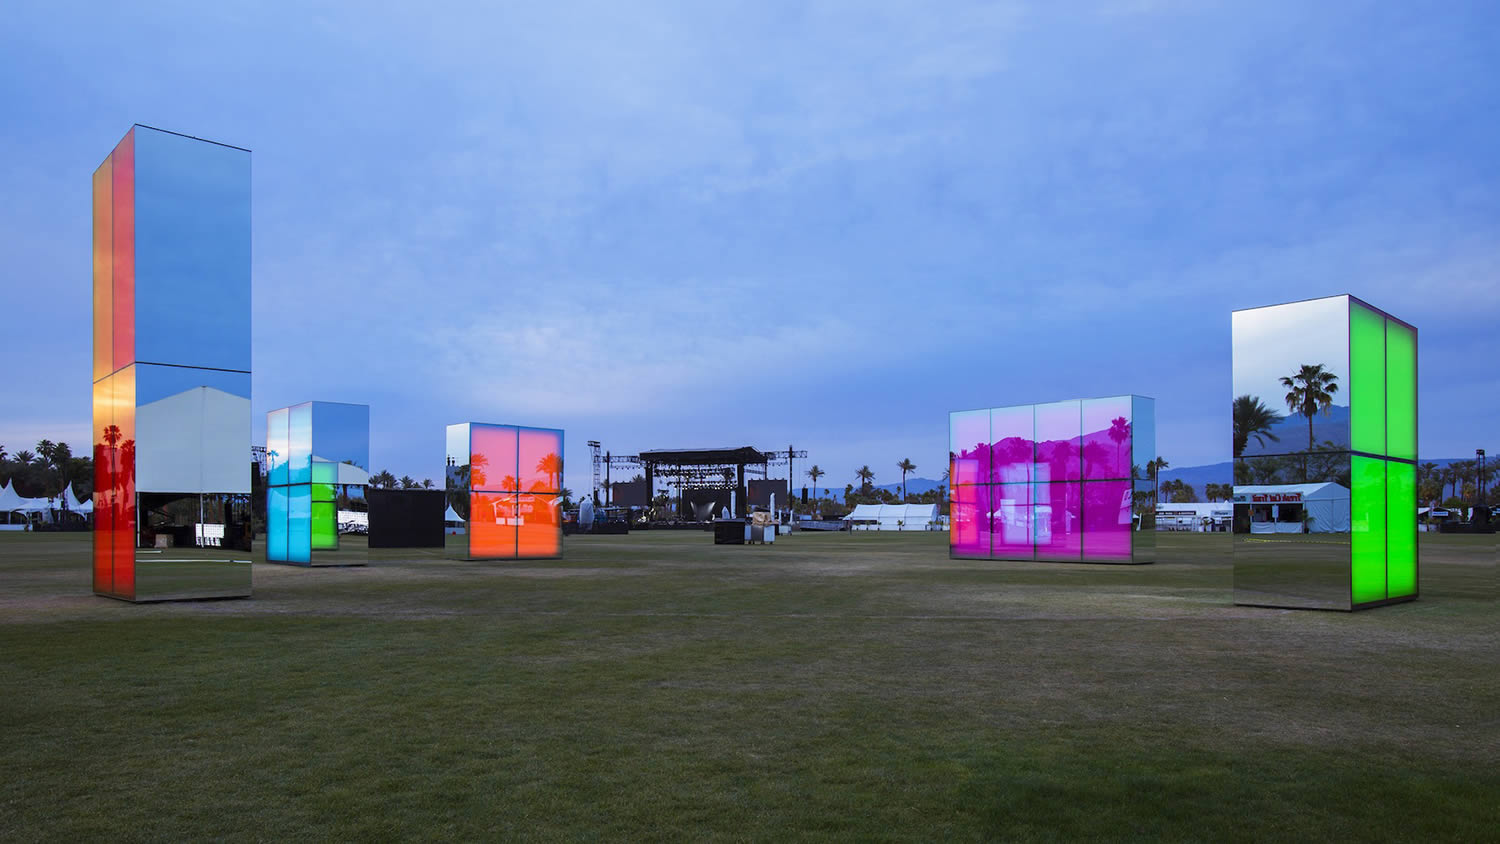 panoramic view coachella by philip k smith